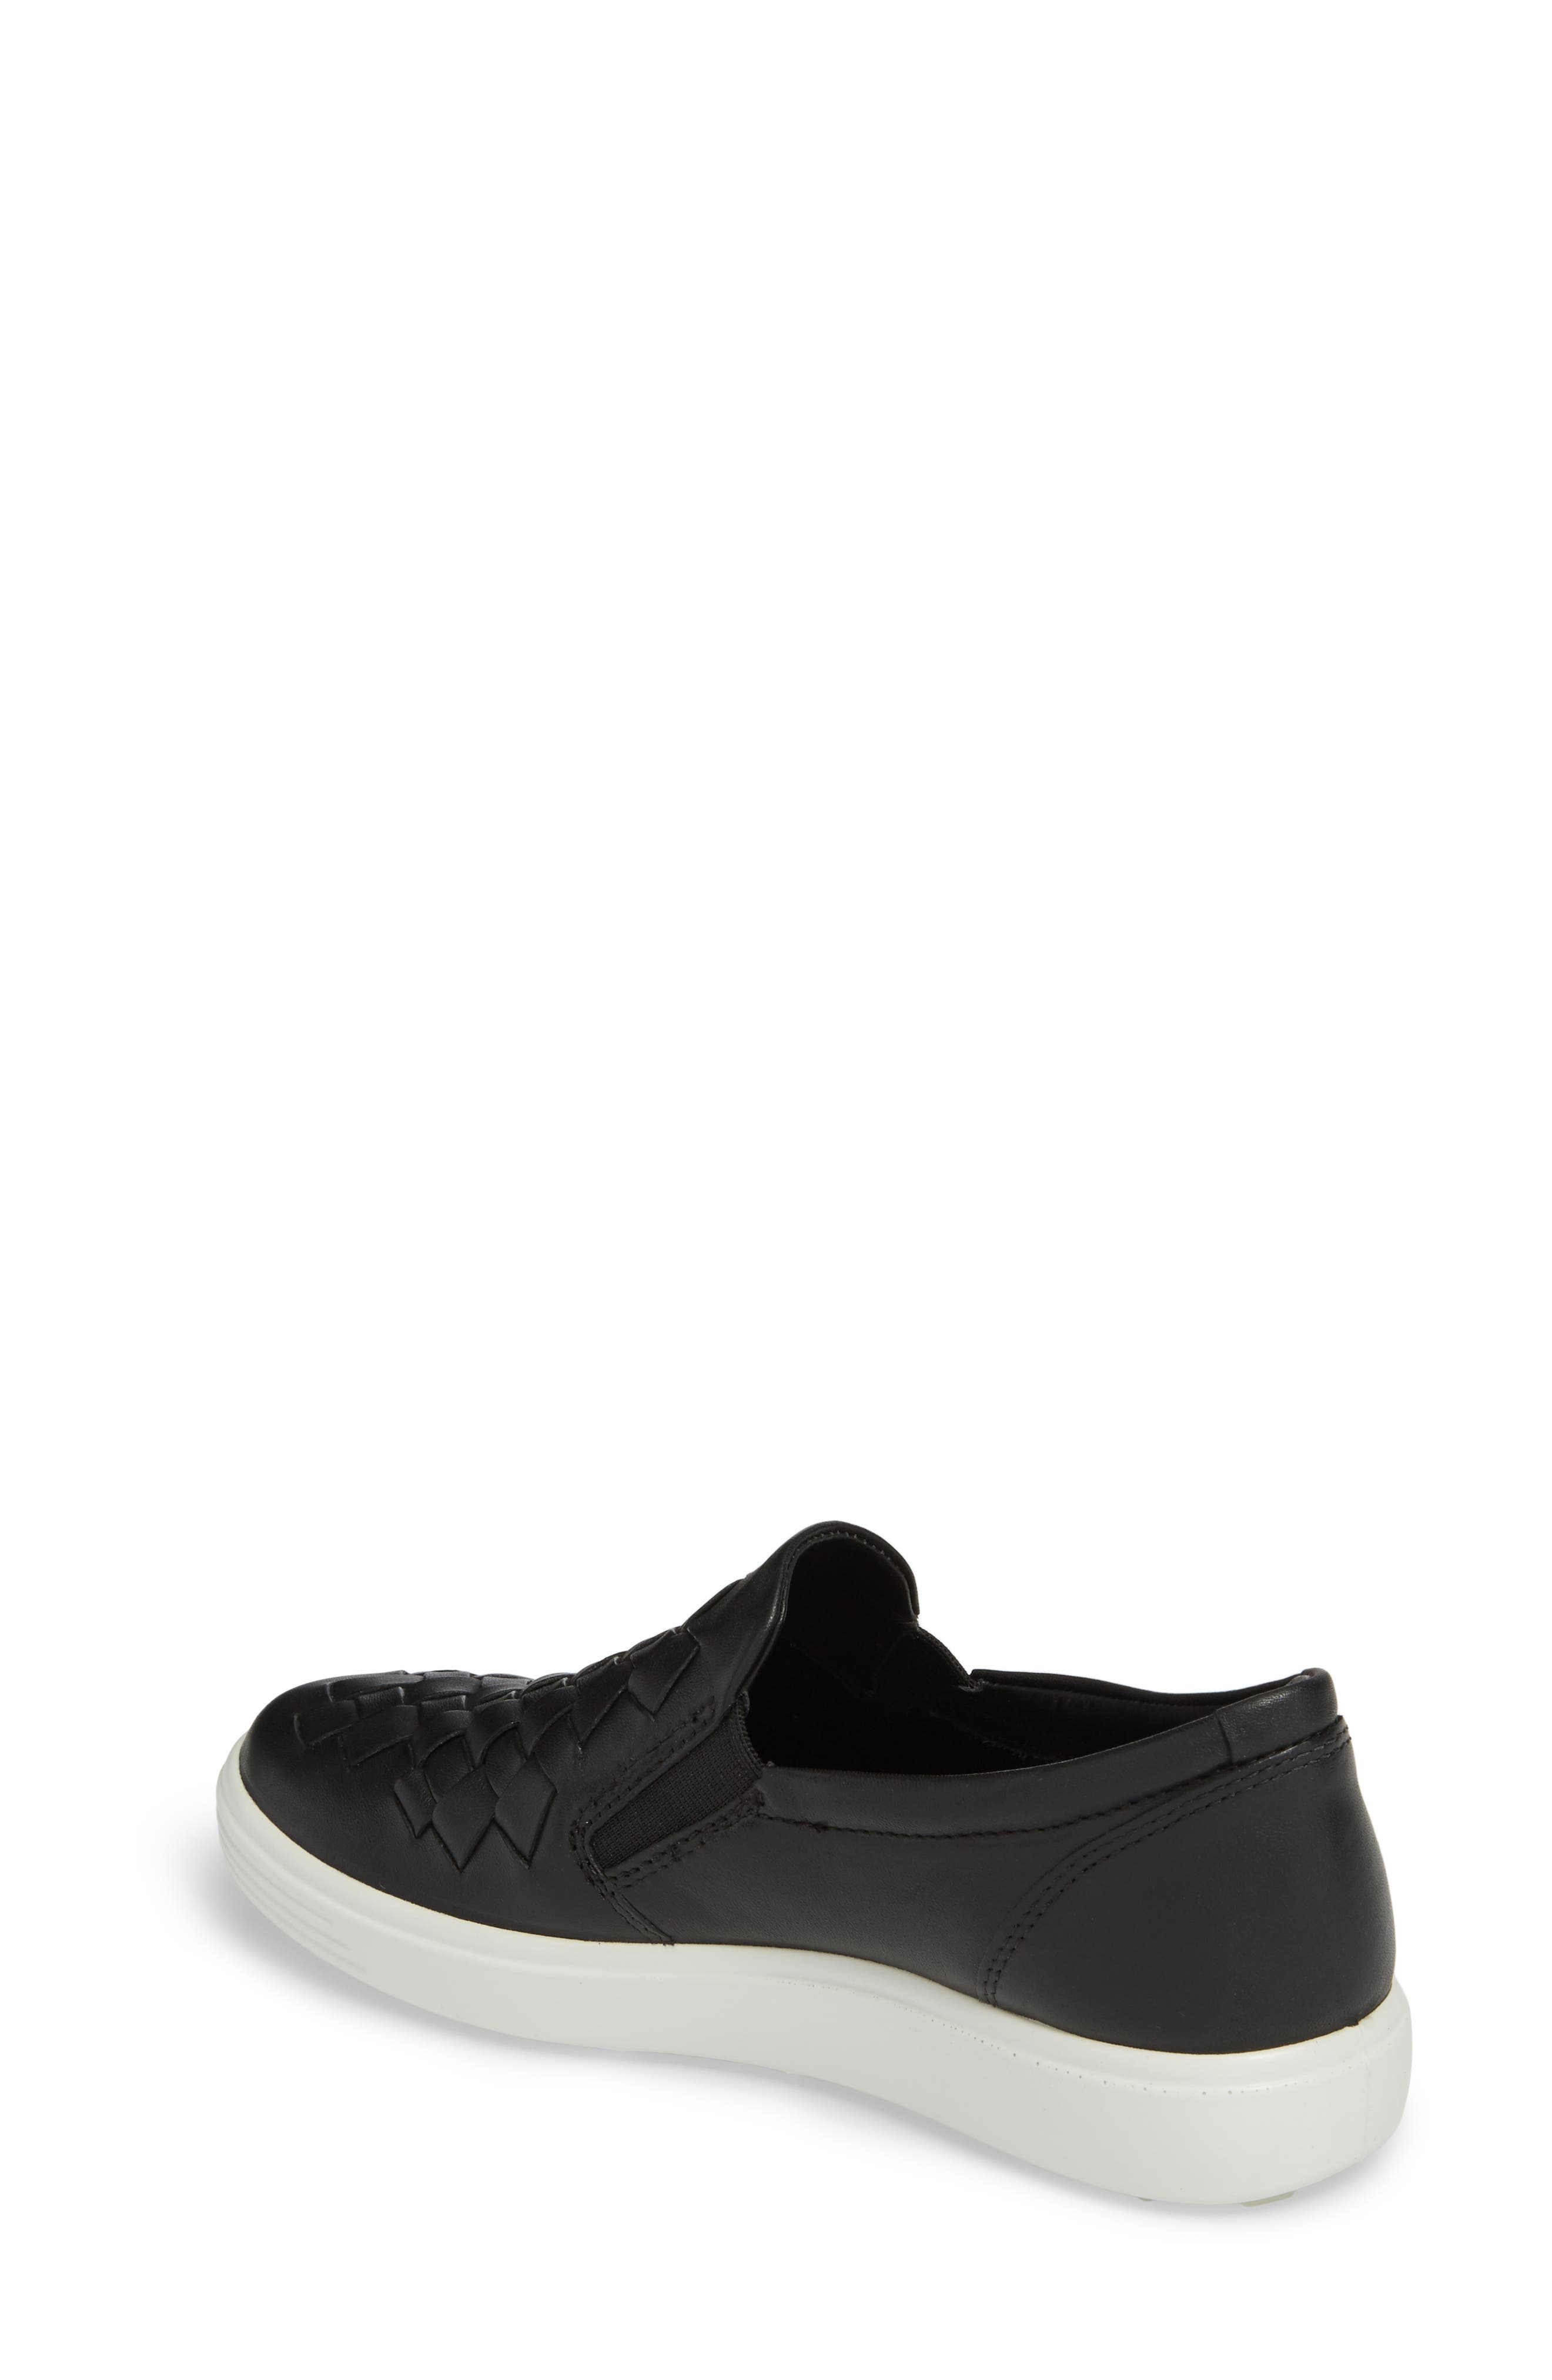 ECO Soft 7 Woven Slip-On Sneaker,                             Alternate thumbnail 2, color,                             BLACK LEATHER